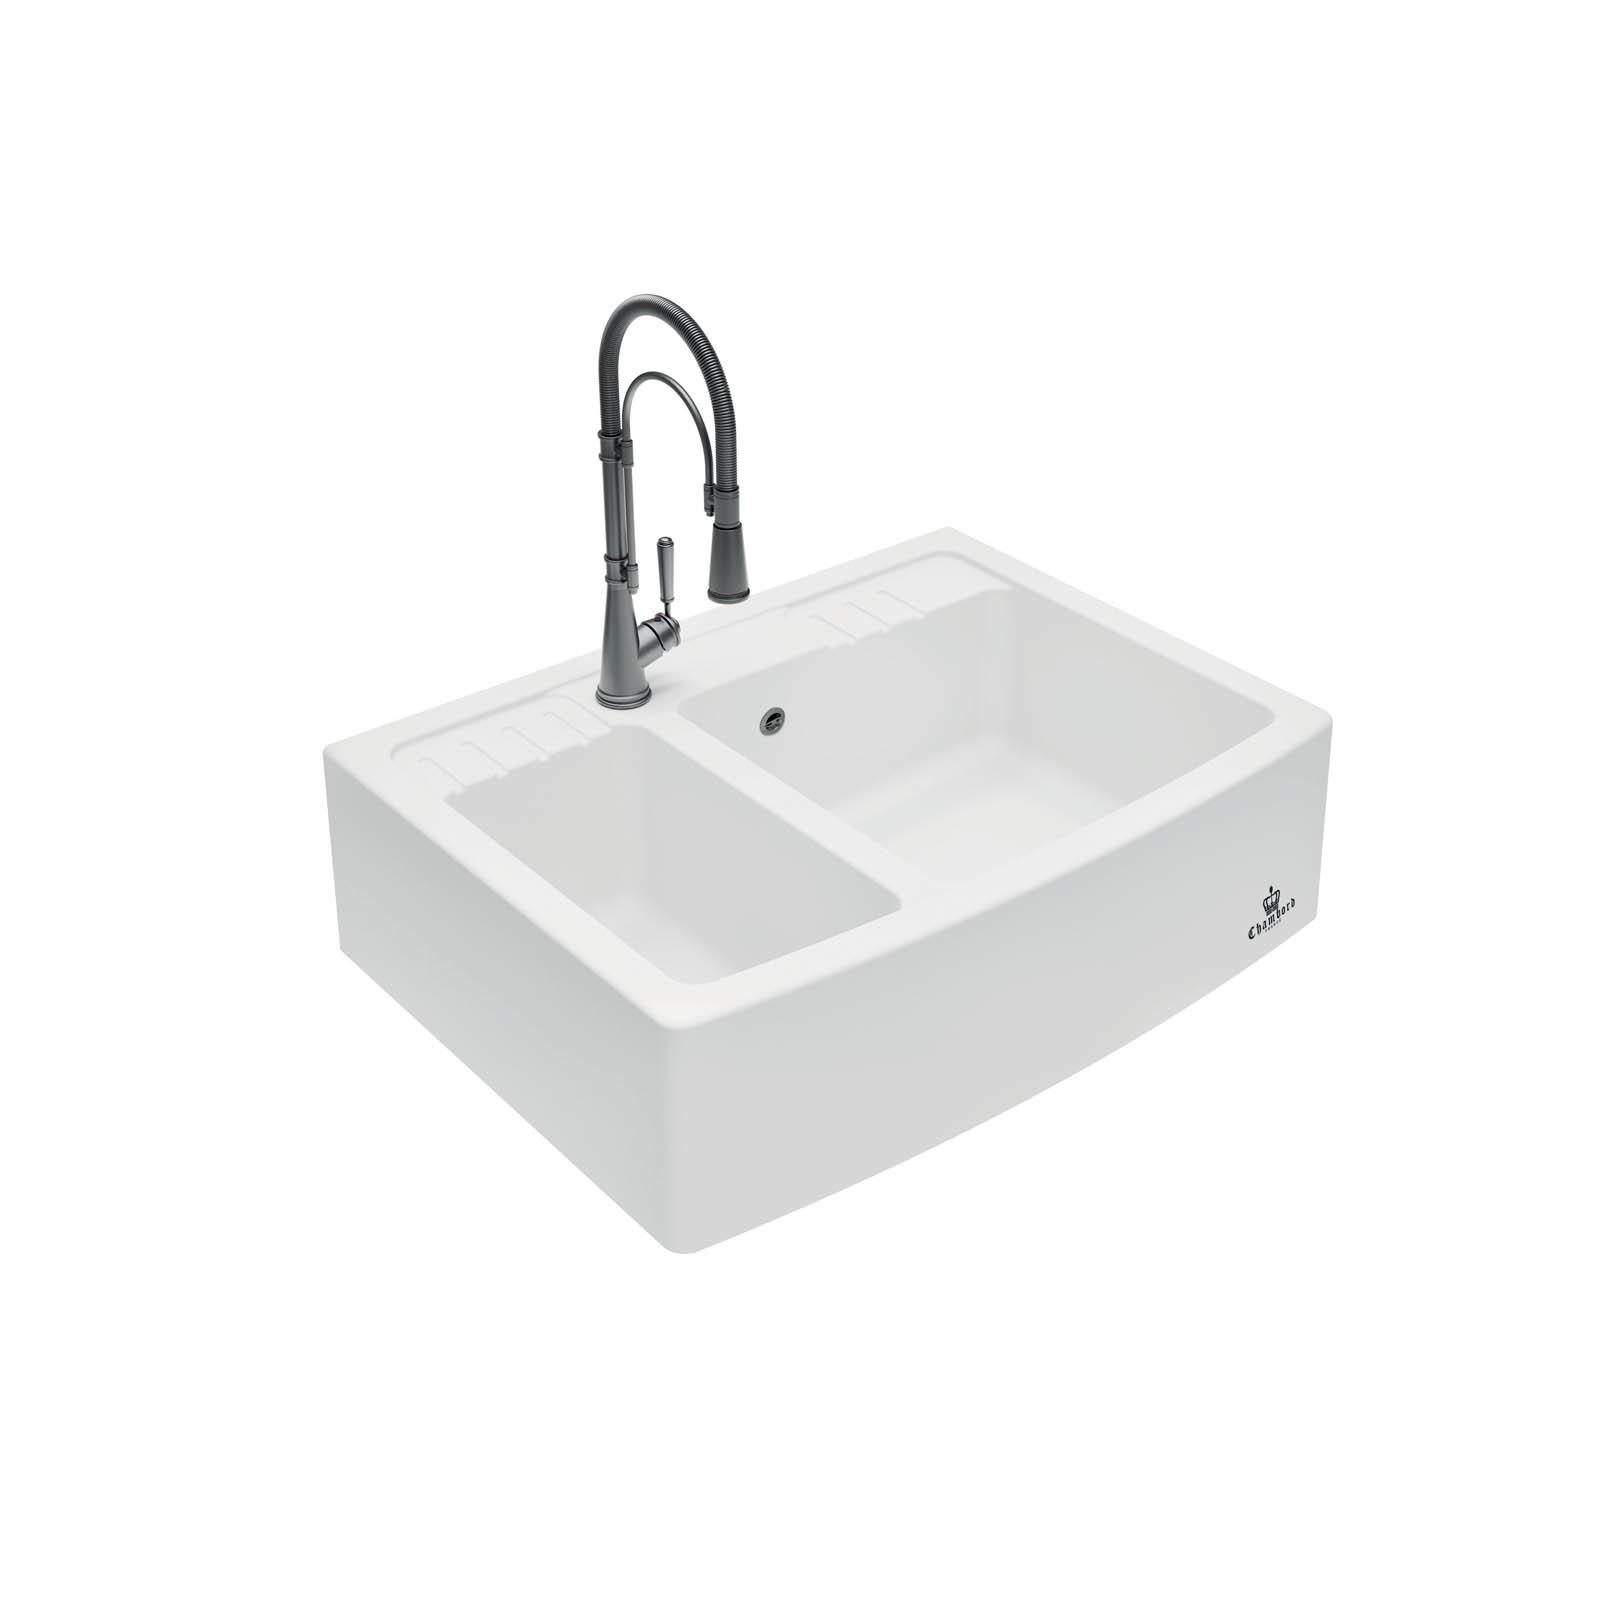 High-quality sink Clotaire III granit white - one and a half bowl